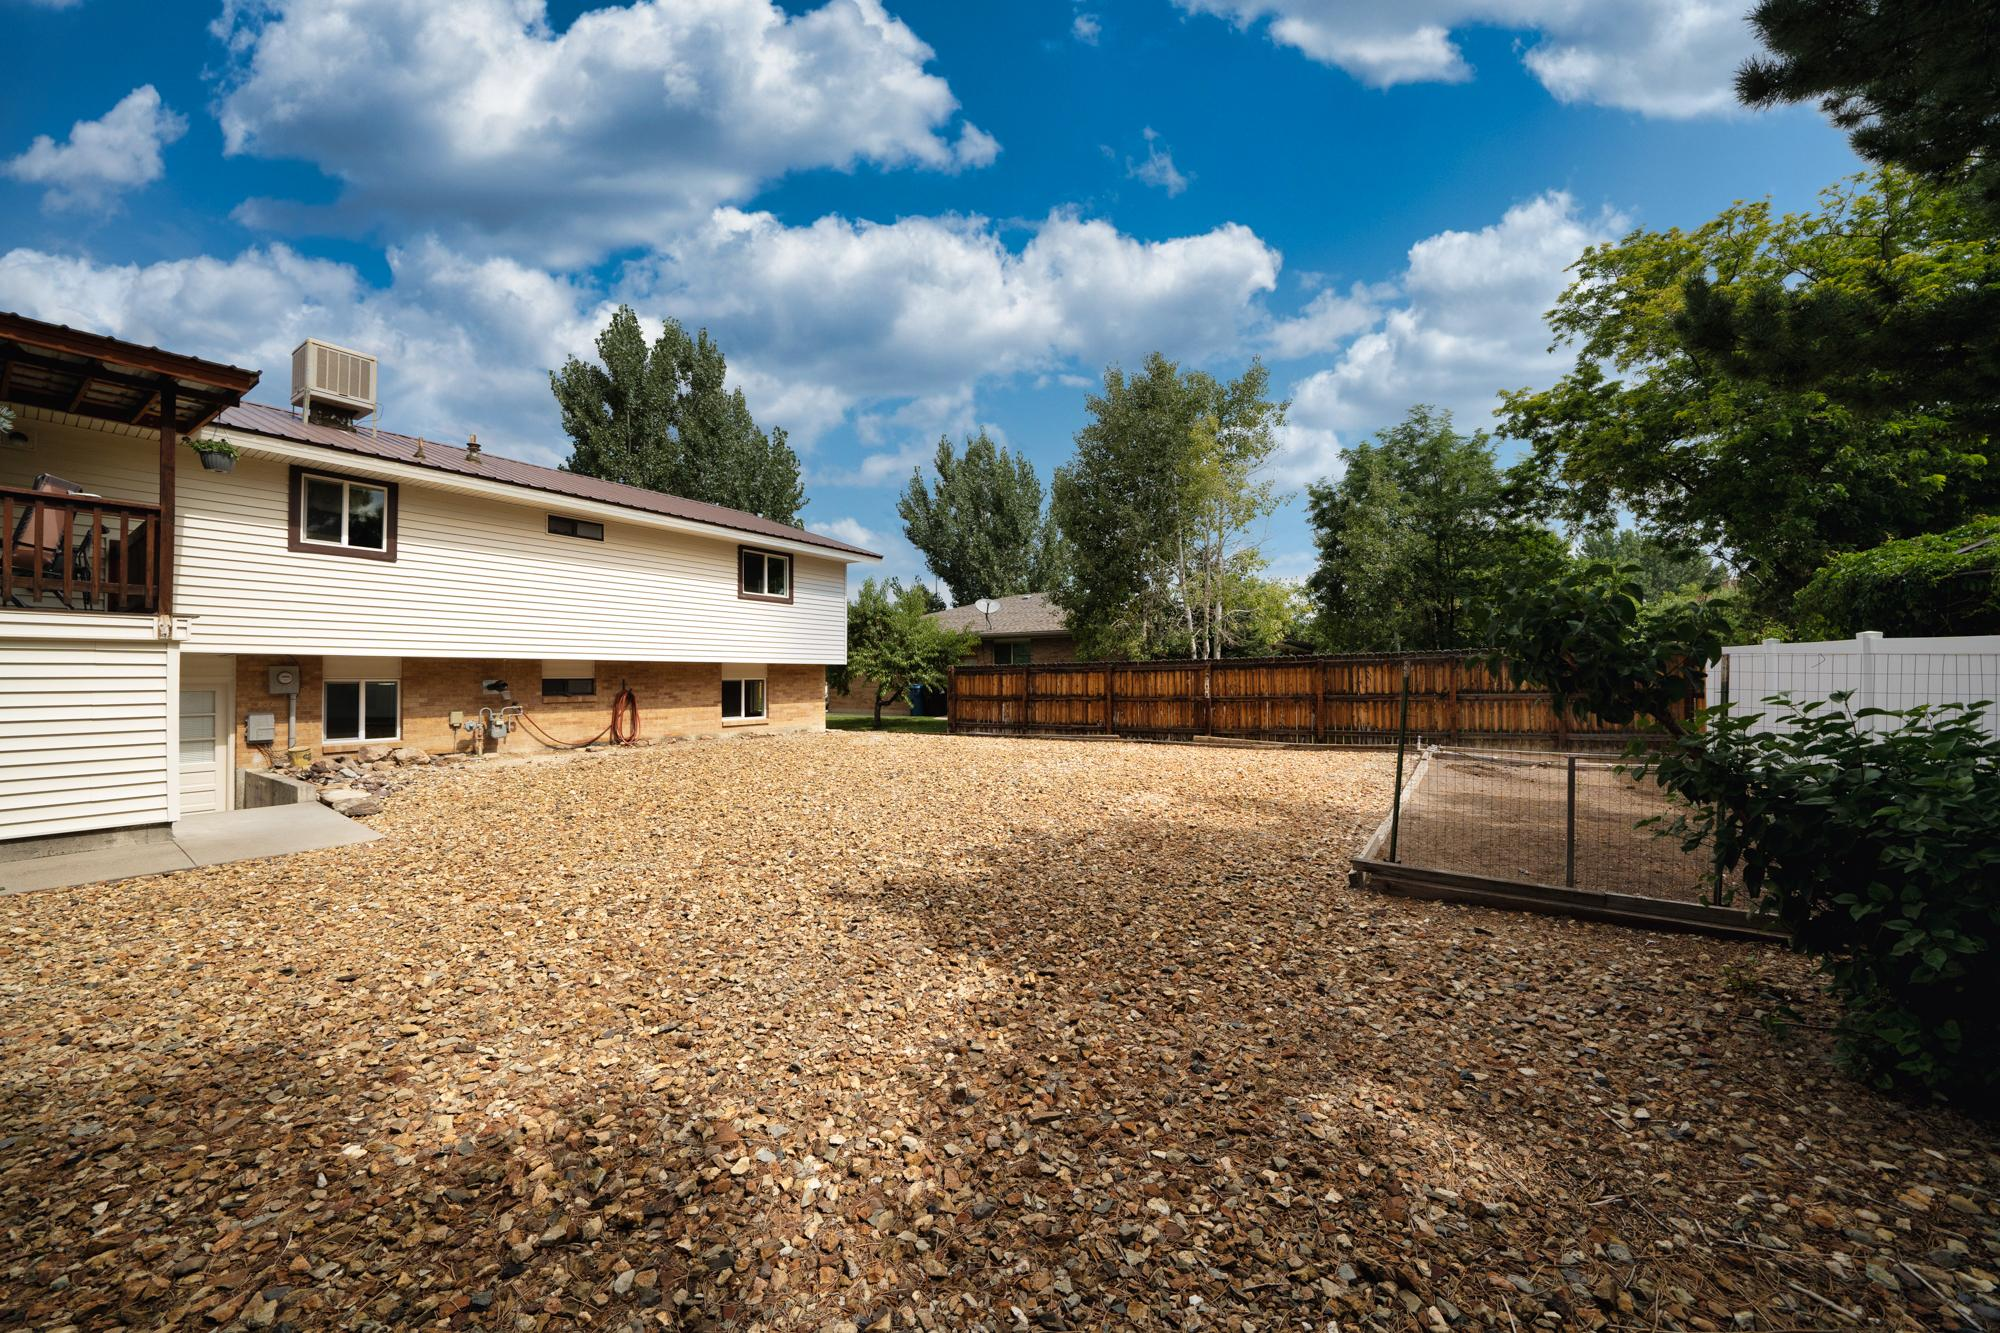 Xeriscaped Back Yard - 1311 Manchester Dr Montrose, CO 81401 - Atha Team Realty Agents